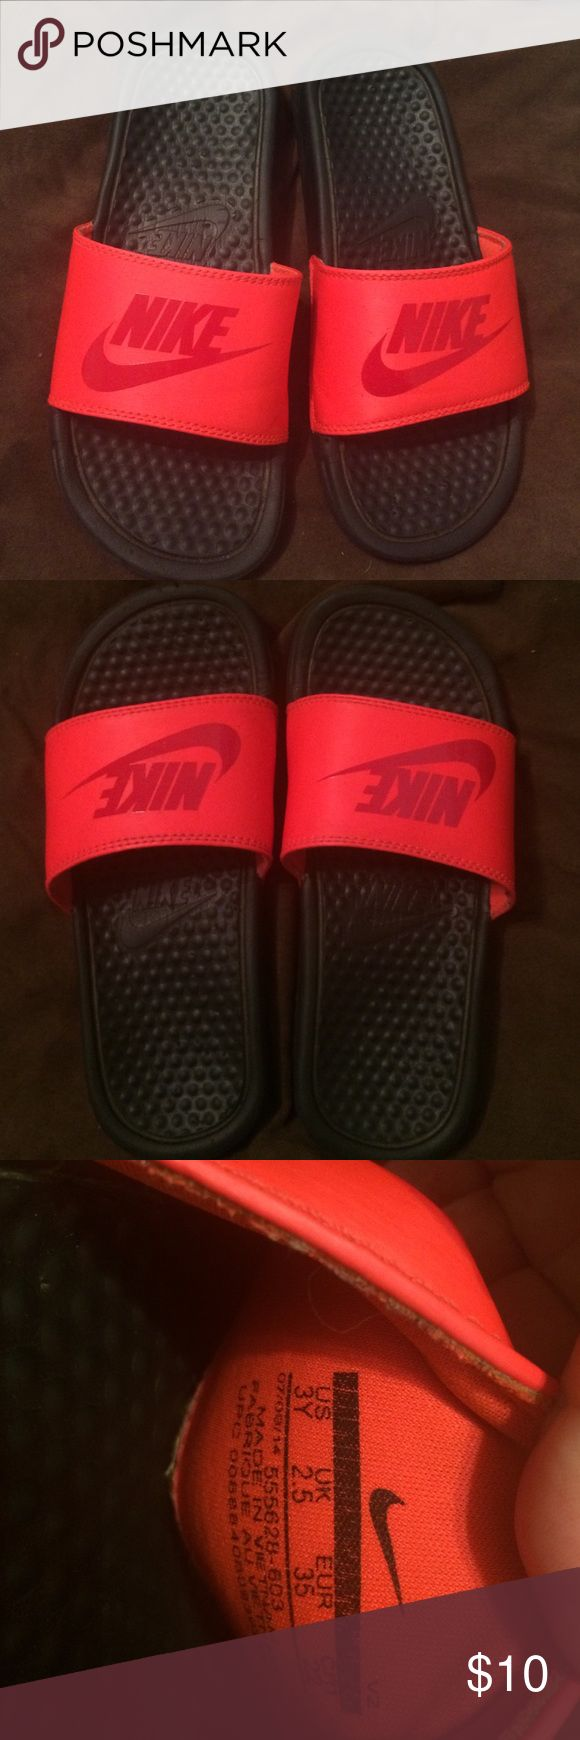 Nike sliders Y- size 3 red/fluorescent orange Size 3 youth Nike sliders- have been used & up close you can see some puppy marks - see last pic - but still in good condition! Nike Shoes Sandals & Flip Flops